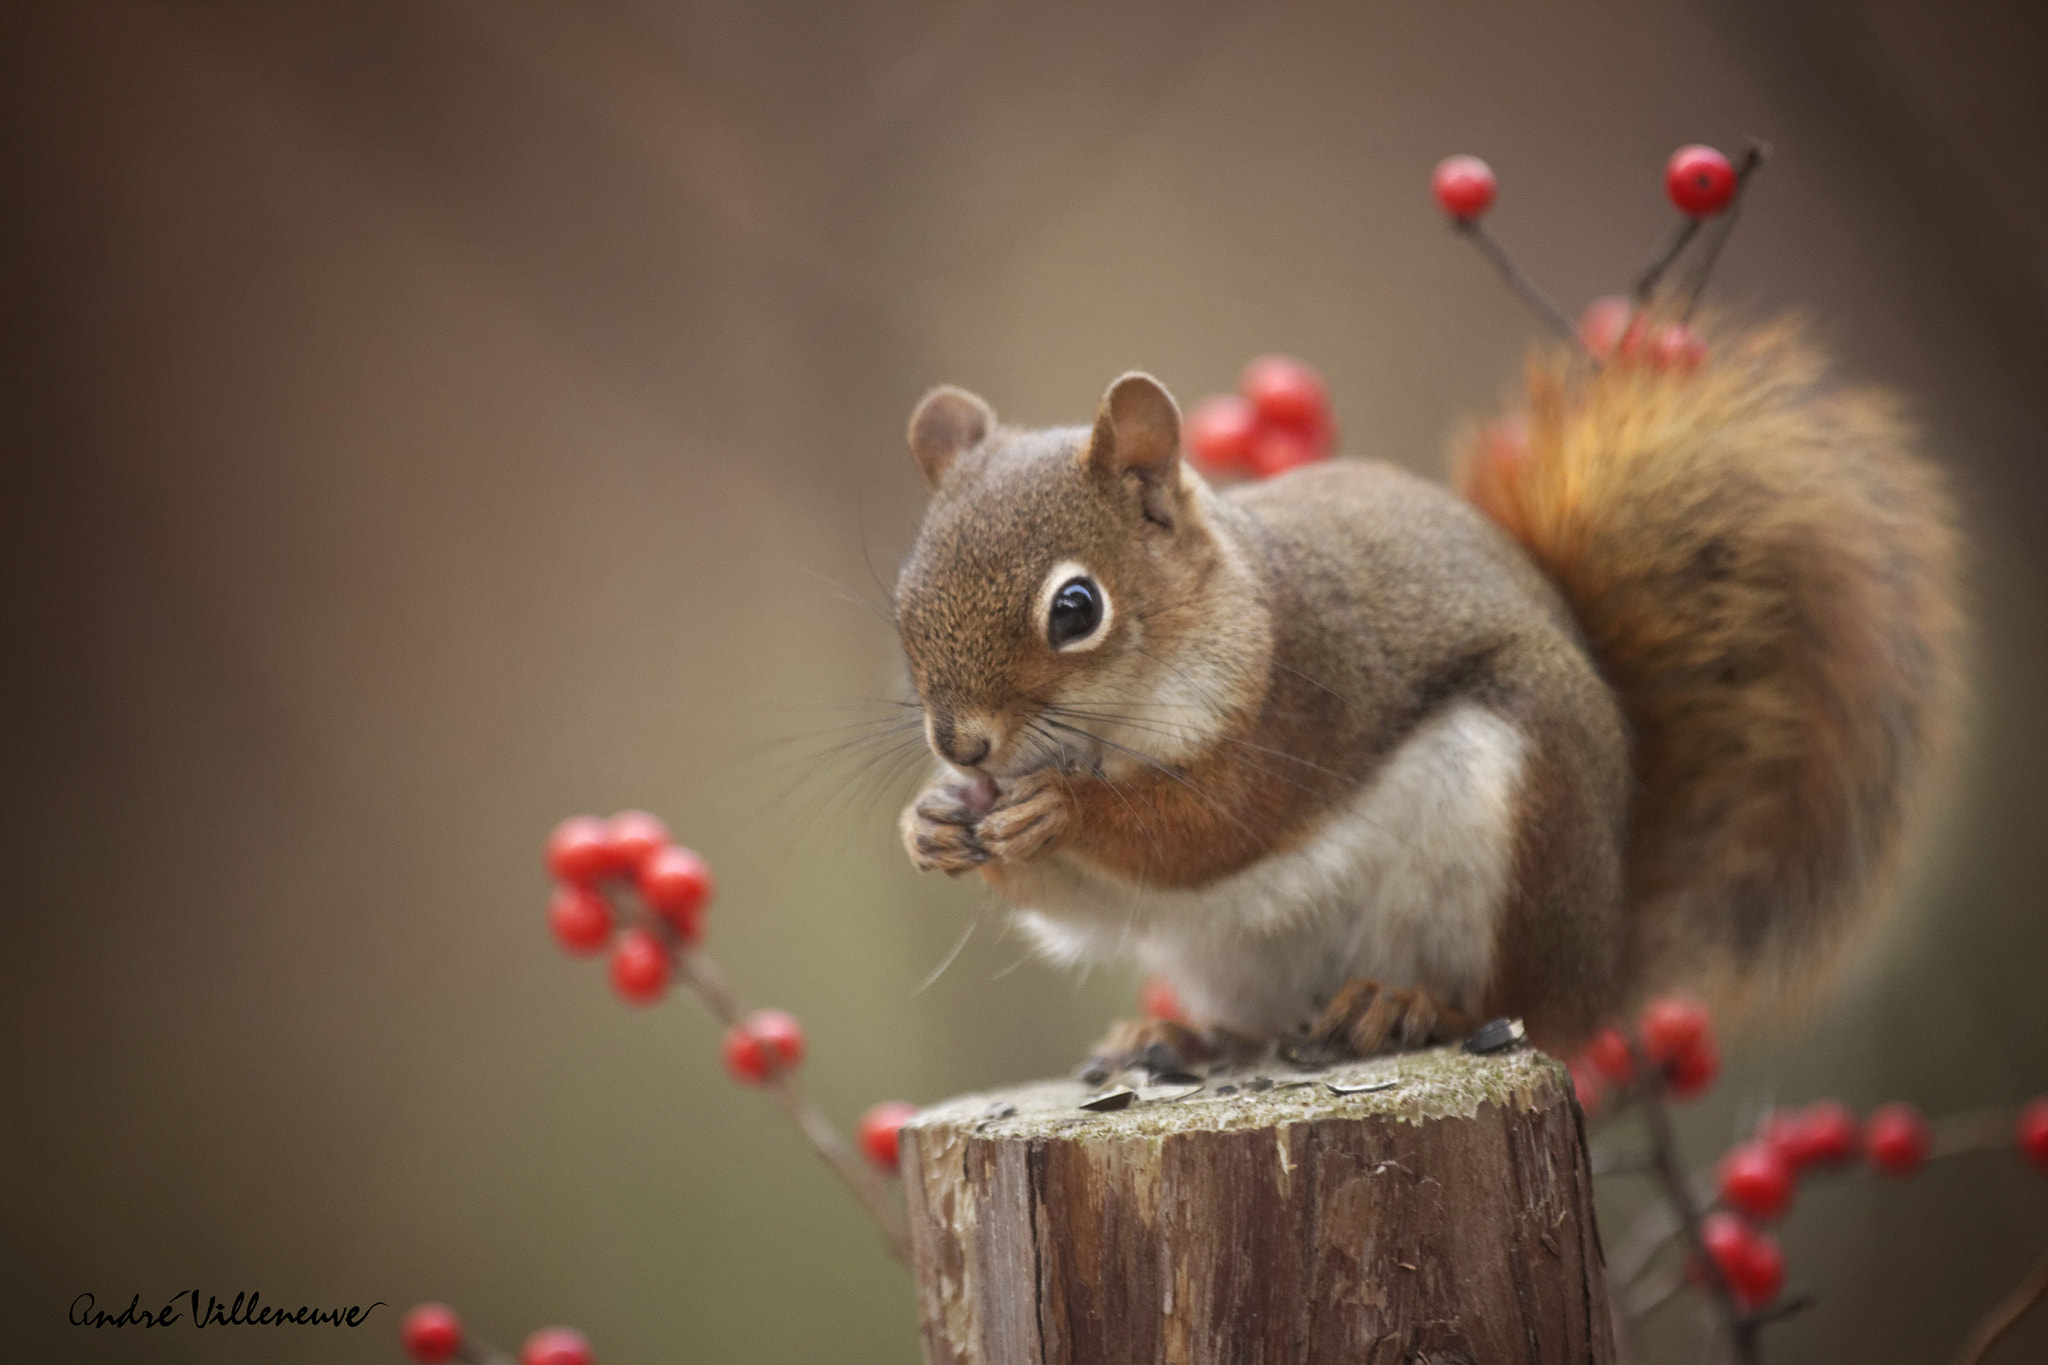 Photograph The red before the white by Andre Villeneuve on 500px